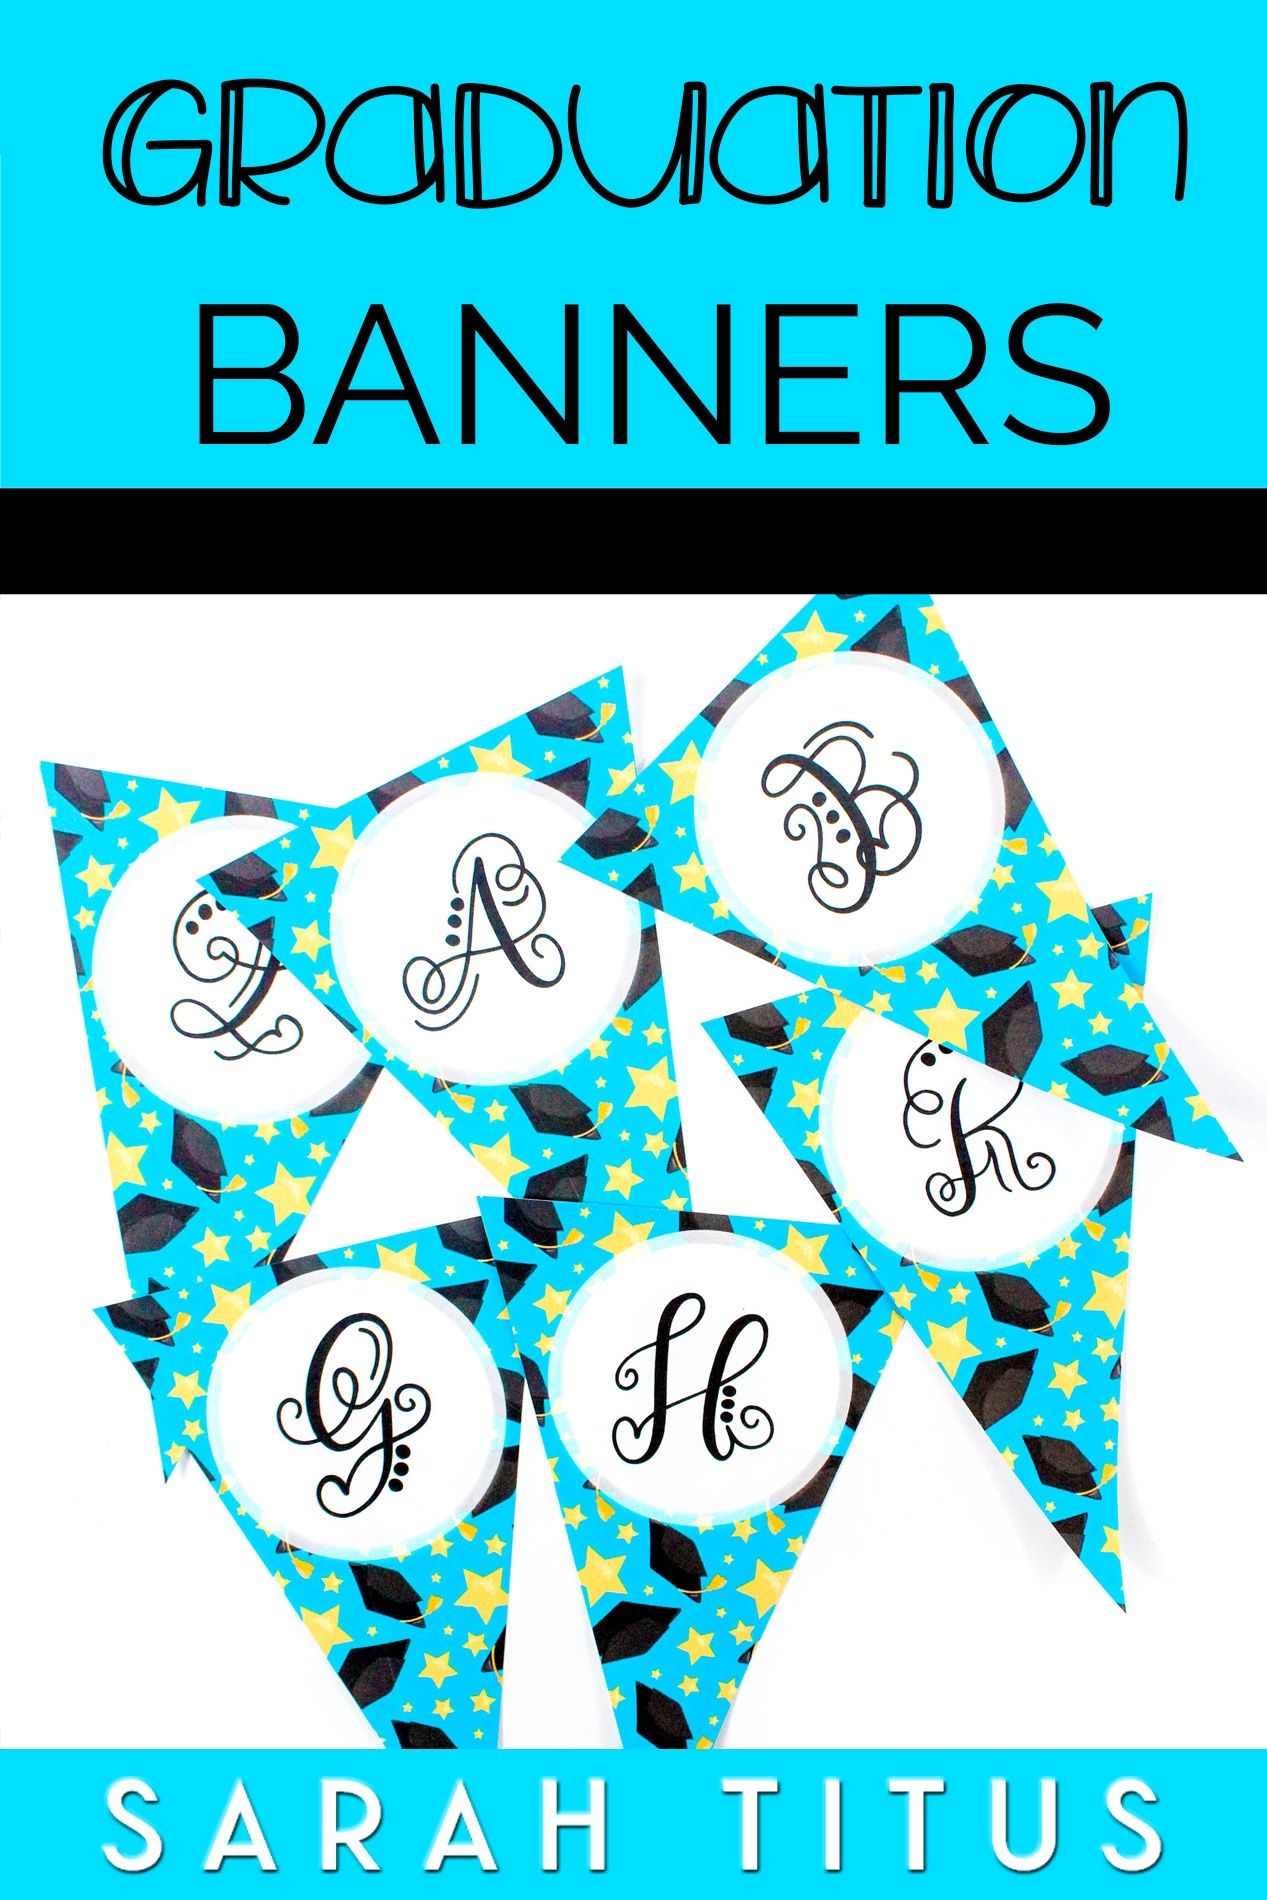 Free Printable Graduation Banners - Sarah Titus - Free Printable Graduation Signs